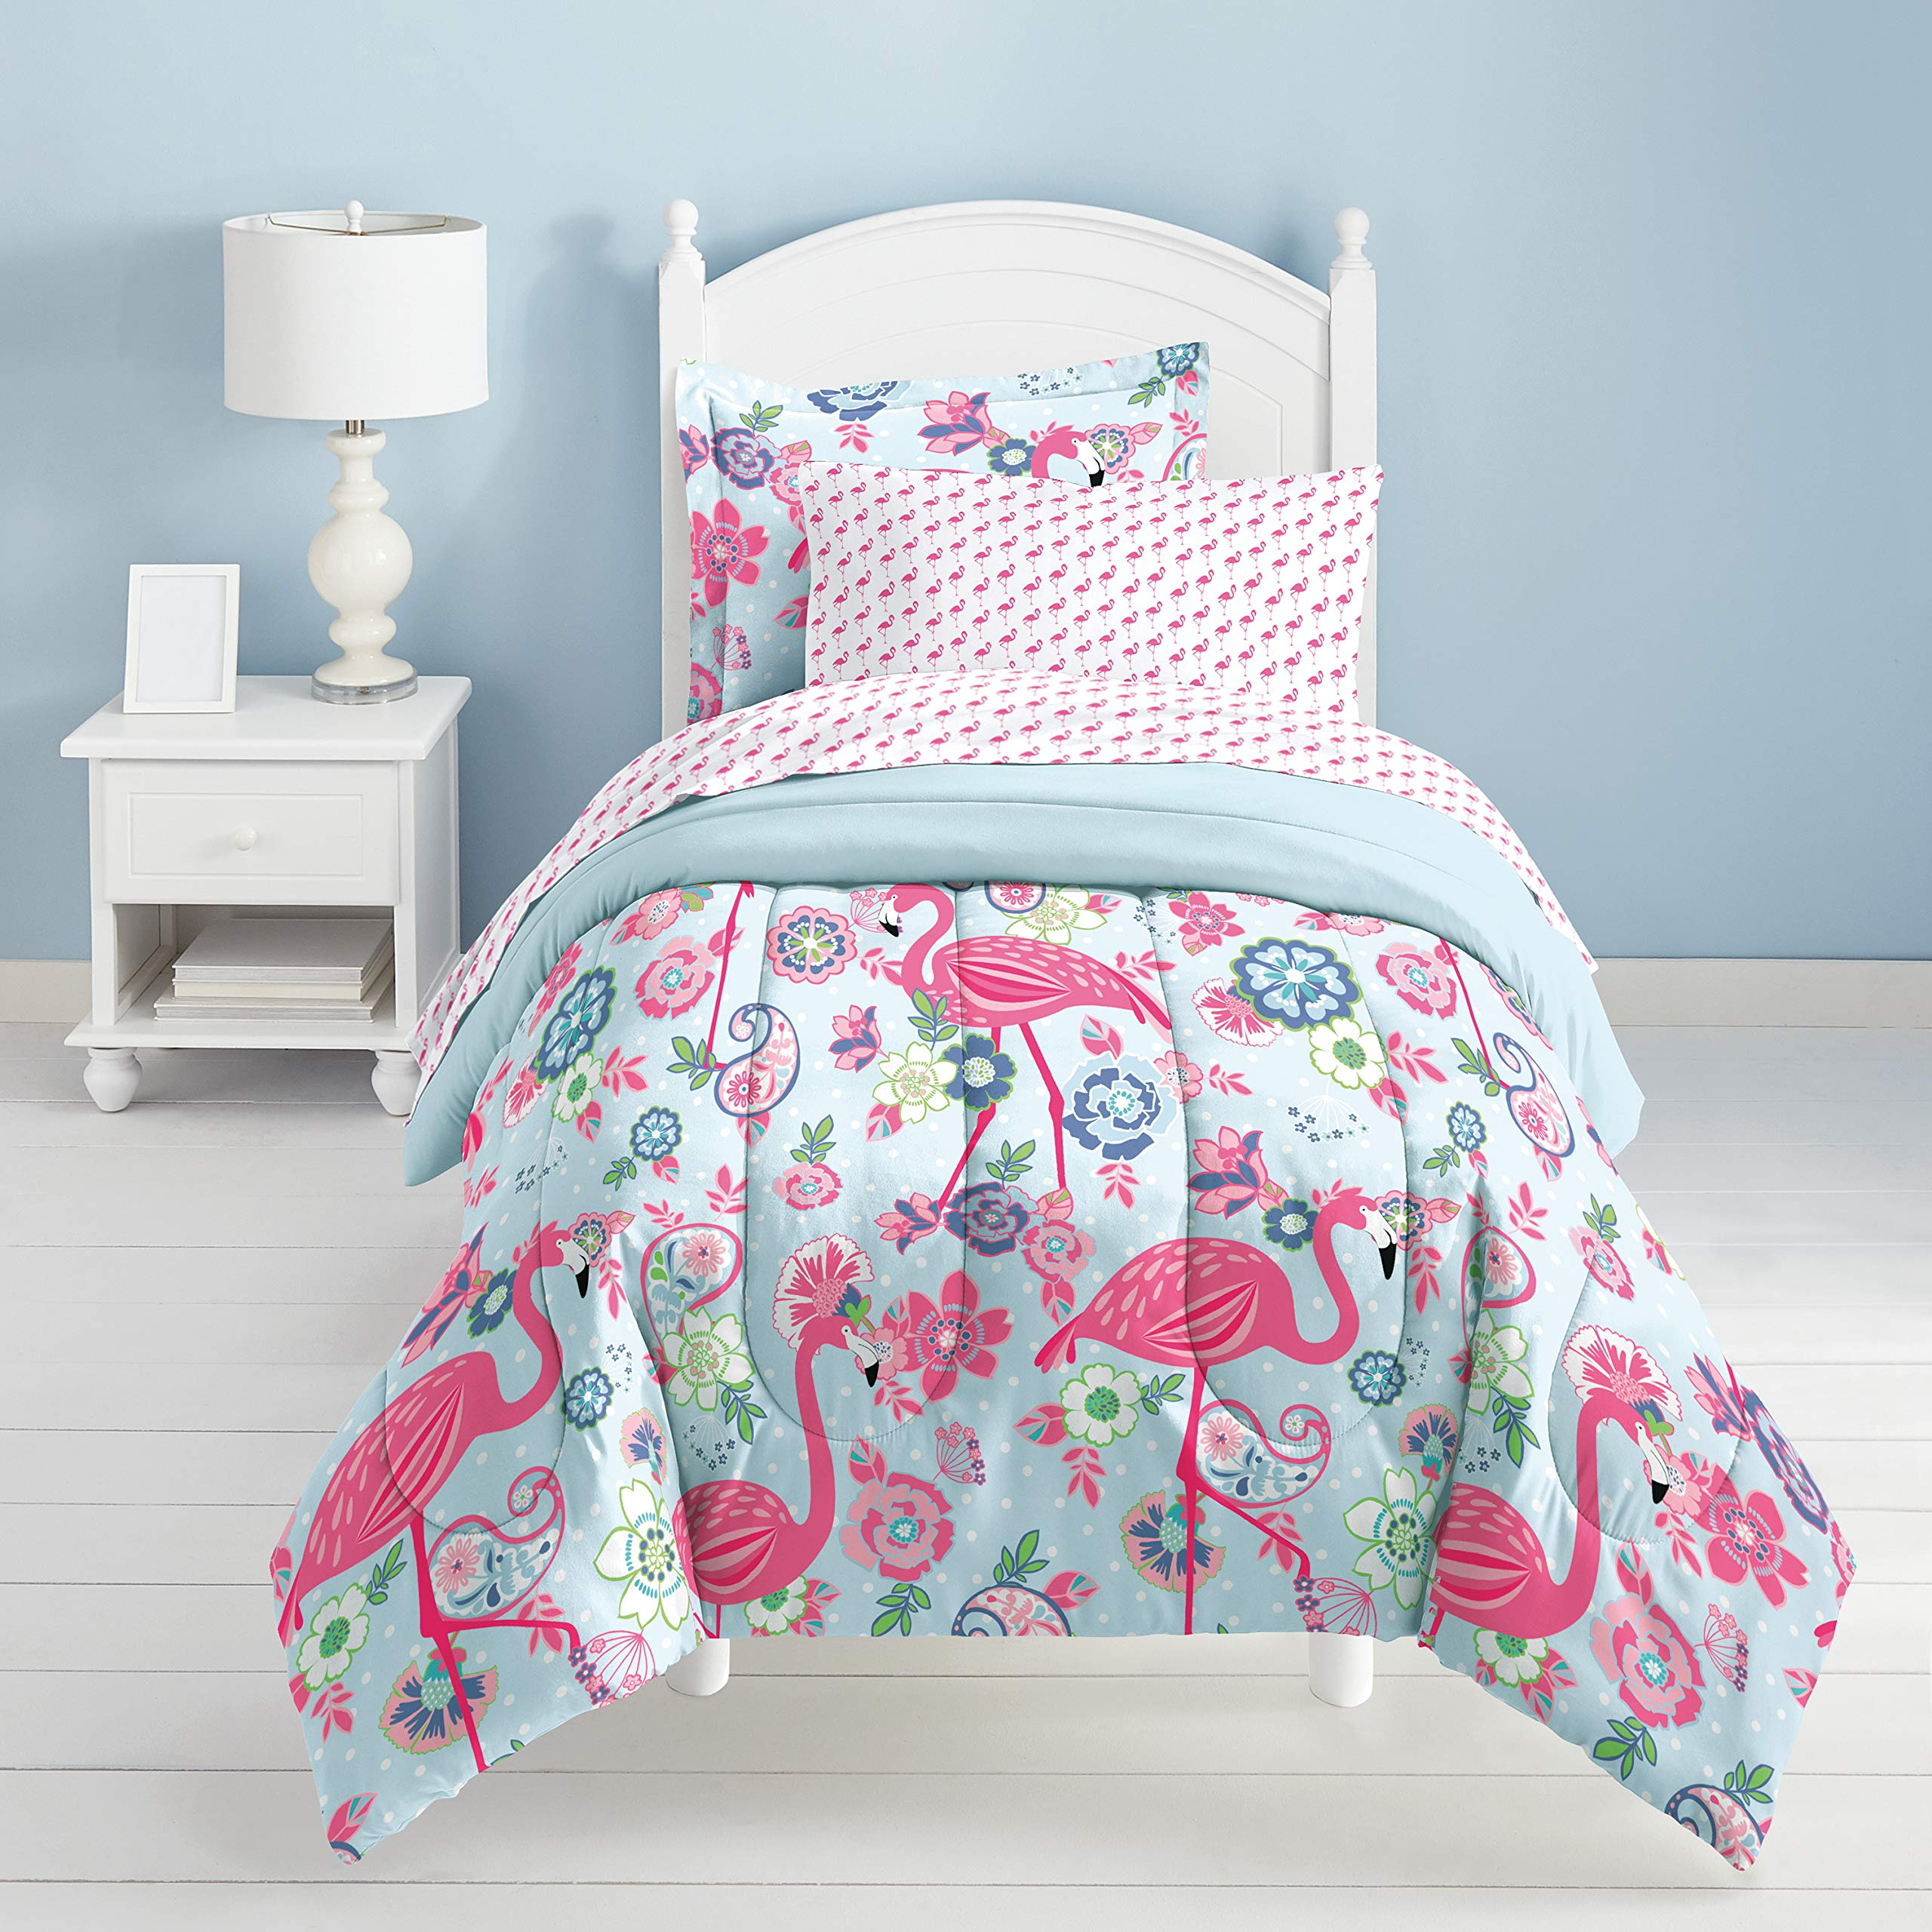 Dream Factory Flamingo Comforter Set, Pink, Twin by Dream Factory (Image #5)